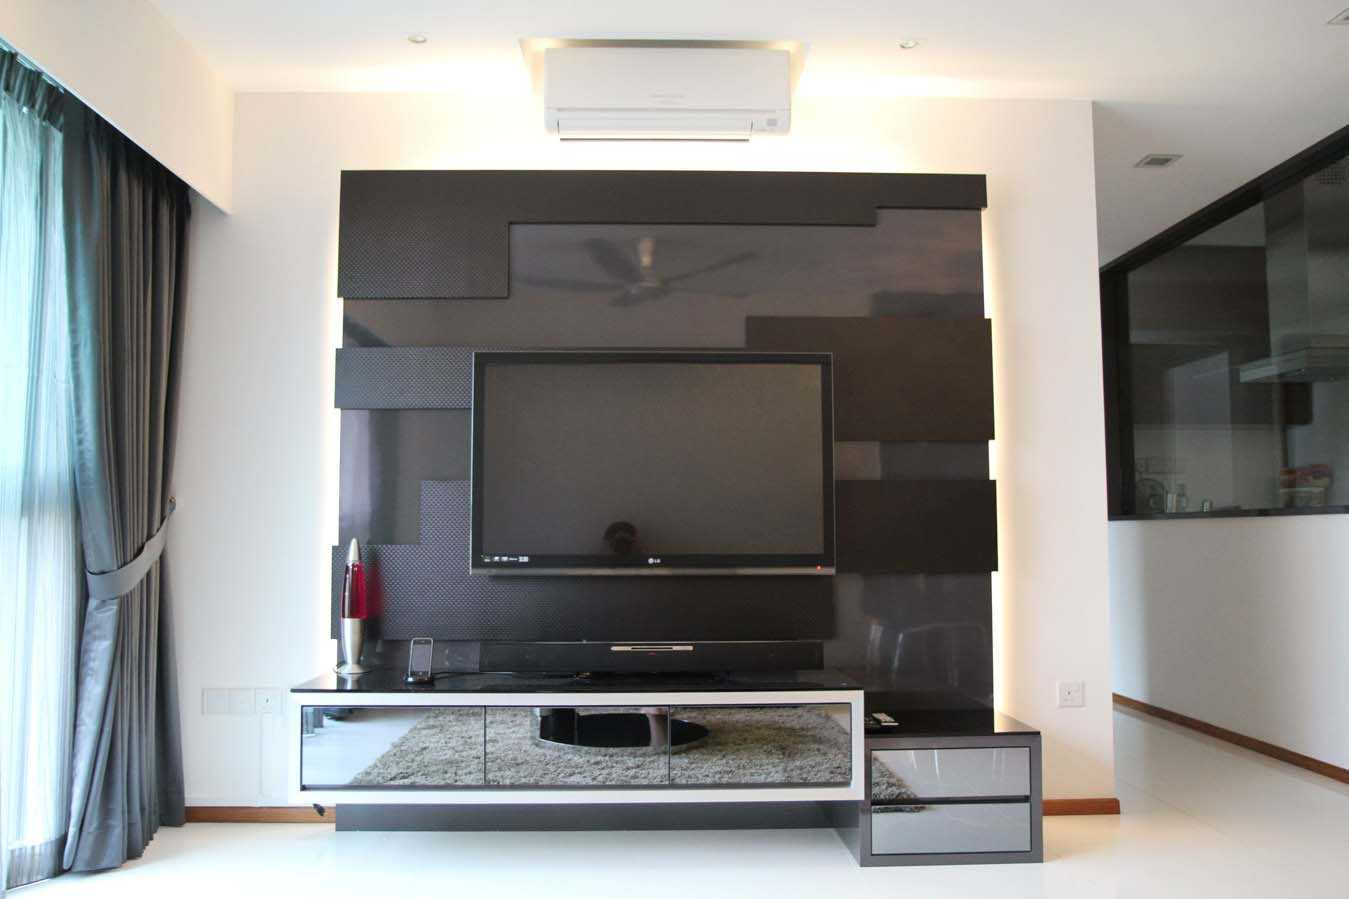 Modern Tv Wall Units For Living Room 20 Modern Tv Unit Design Ideas For Bedroom And Living Room